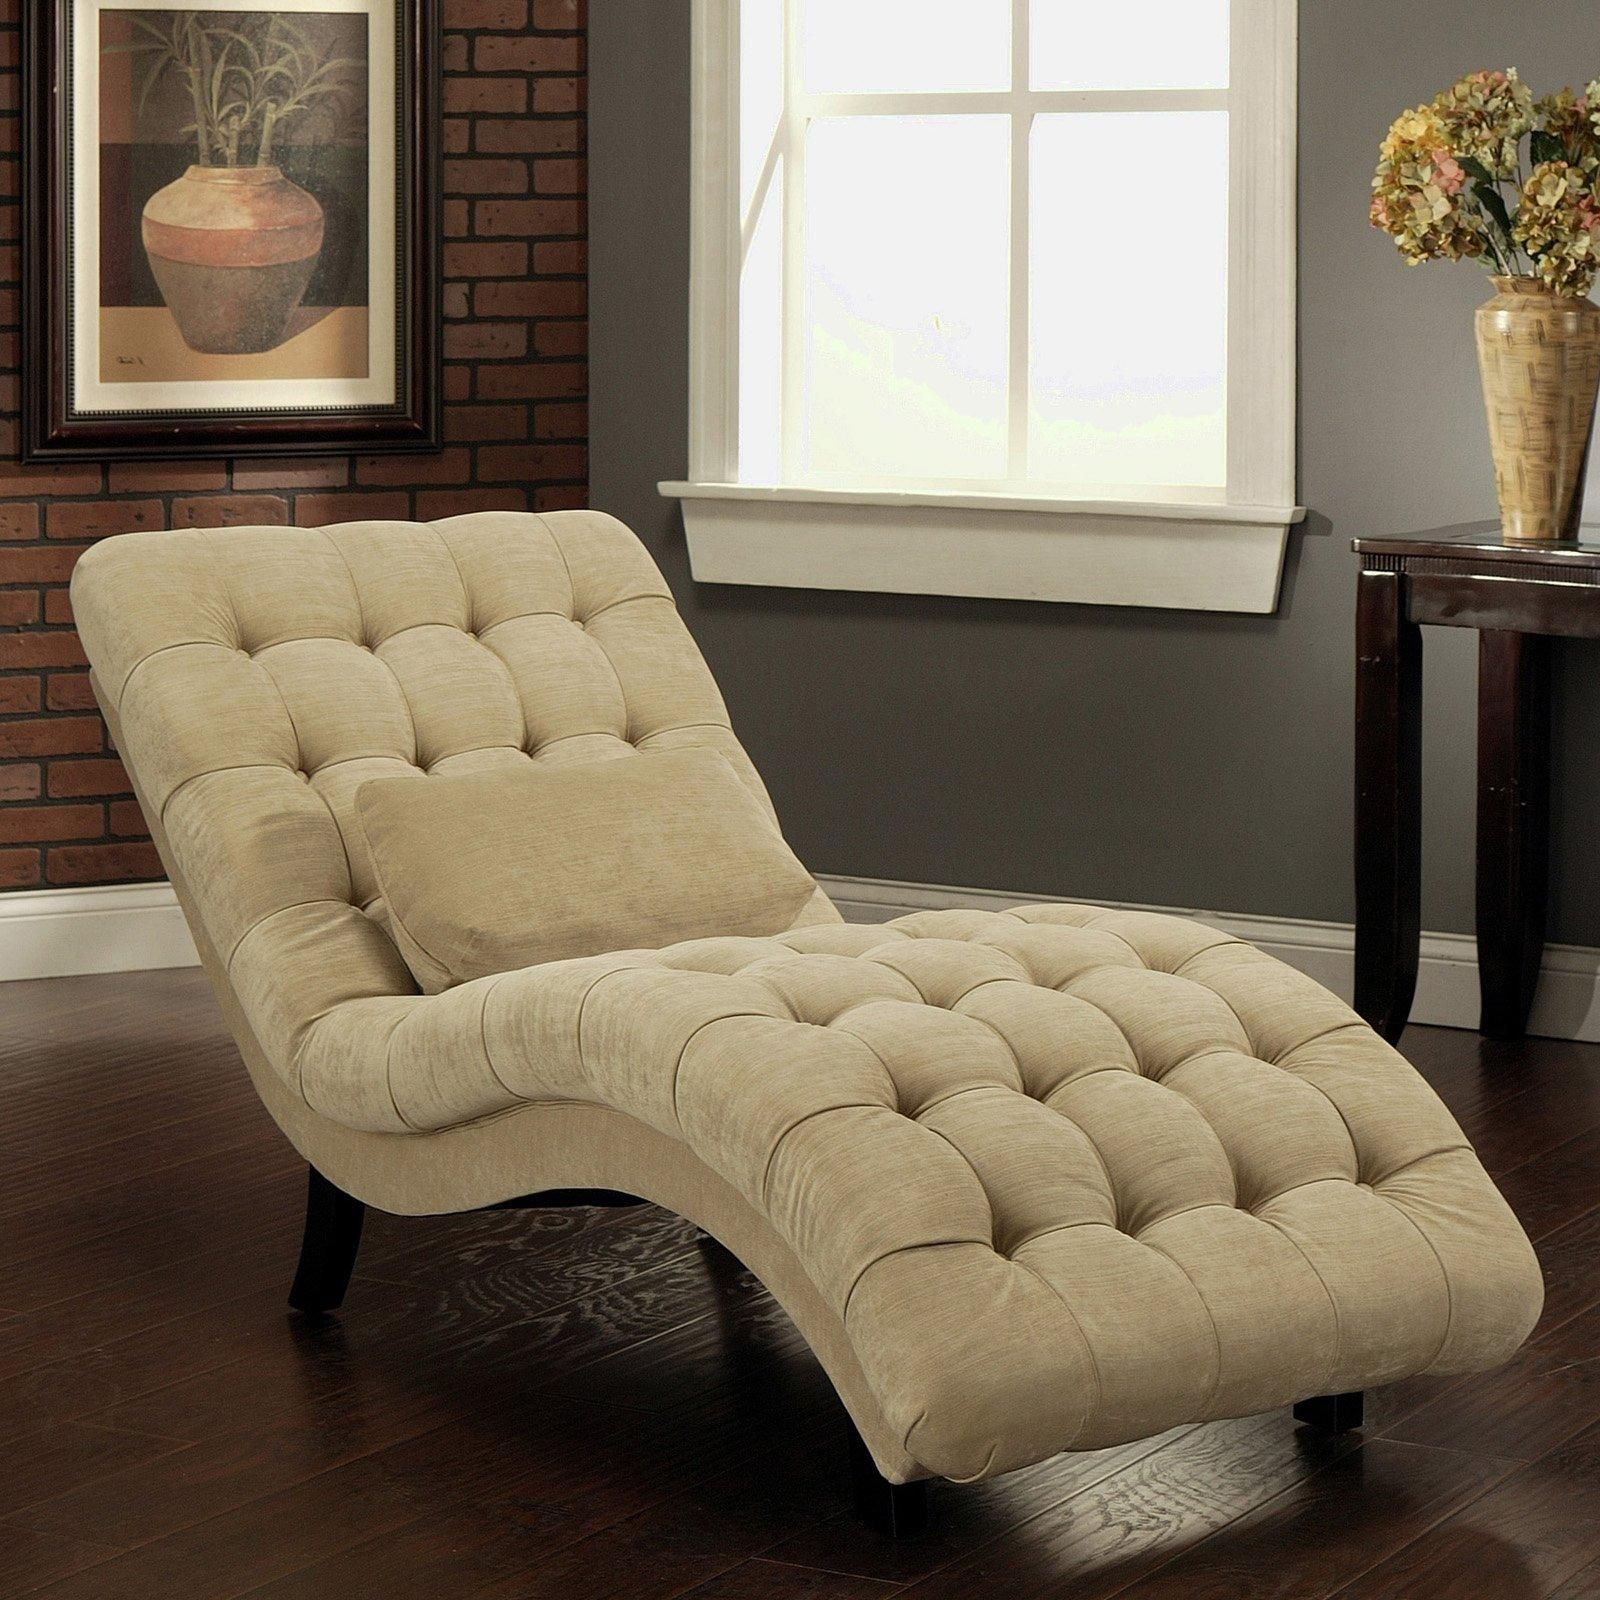 - Chaise Lounge. Chaise Lounge Indoor, Chaise Lounge, Chaise